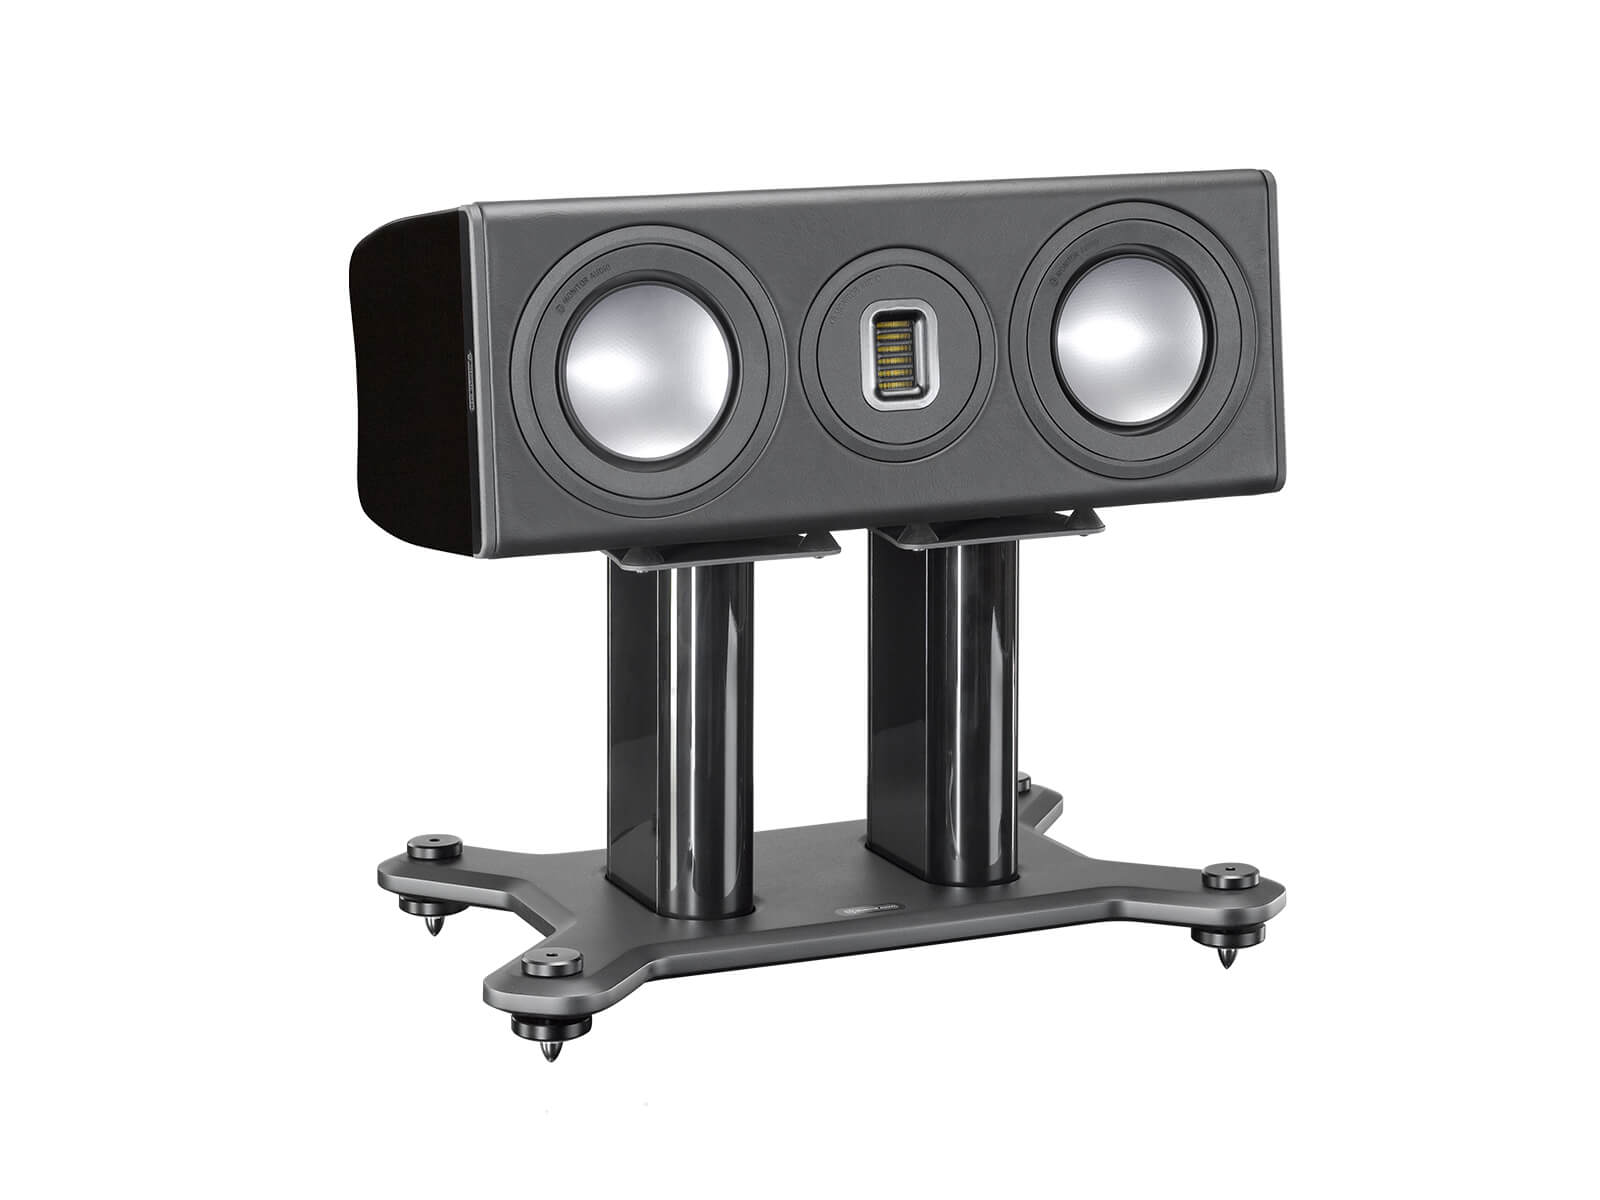 Platinum PLC150 II, grille-less centre channel speakers, with an ebony real wood veneer finish.